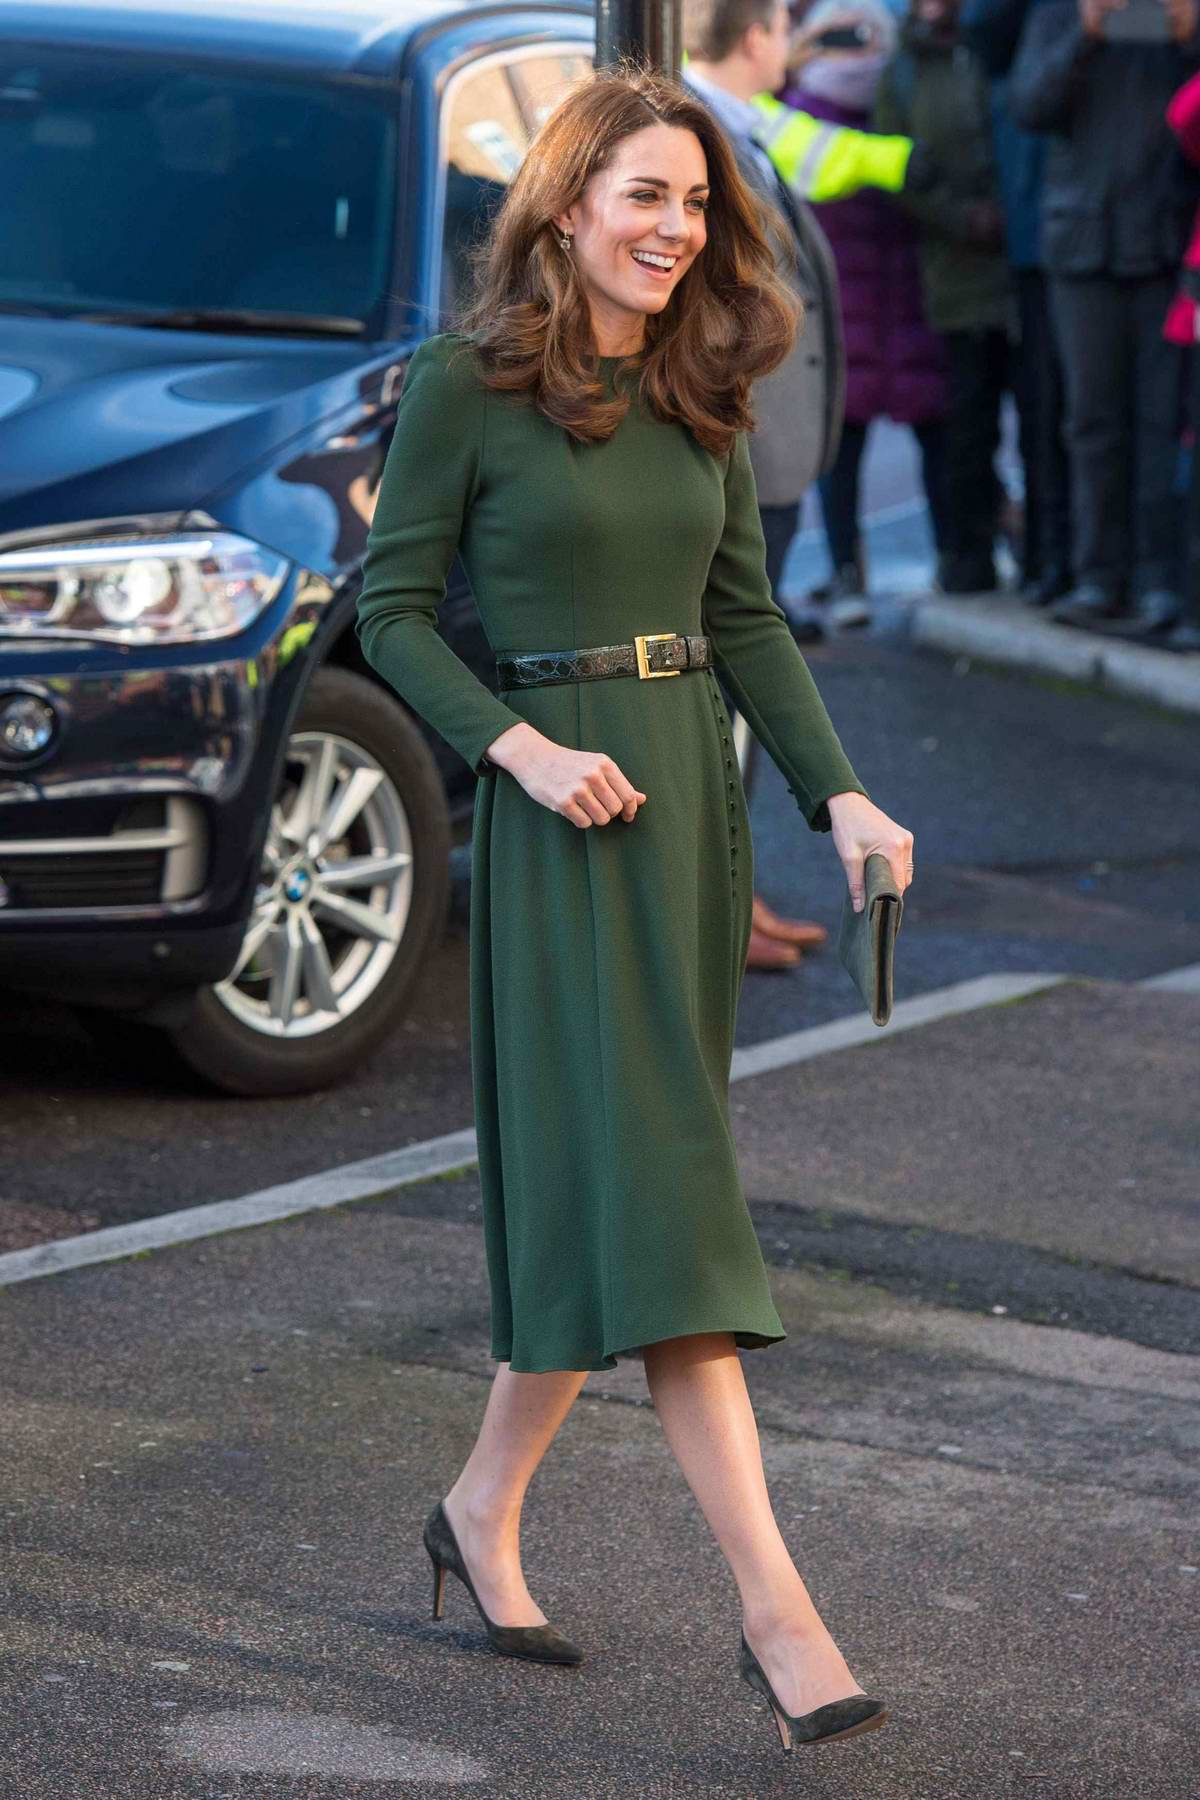 Kate Middleton visits a new National Support Line at the Charity, Family Action in Lewisham, UK